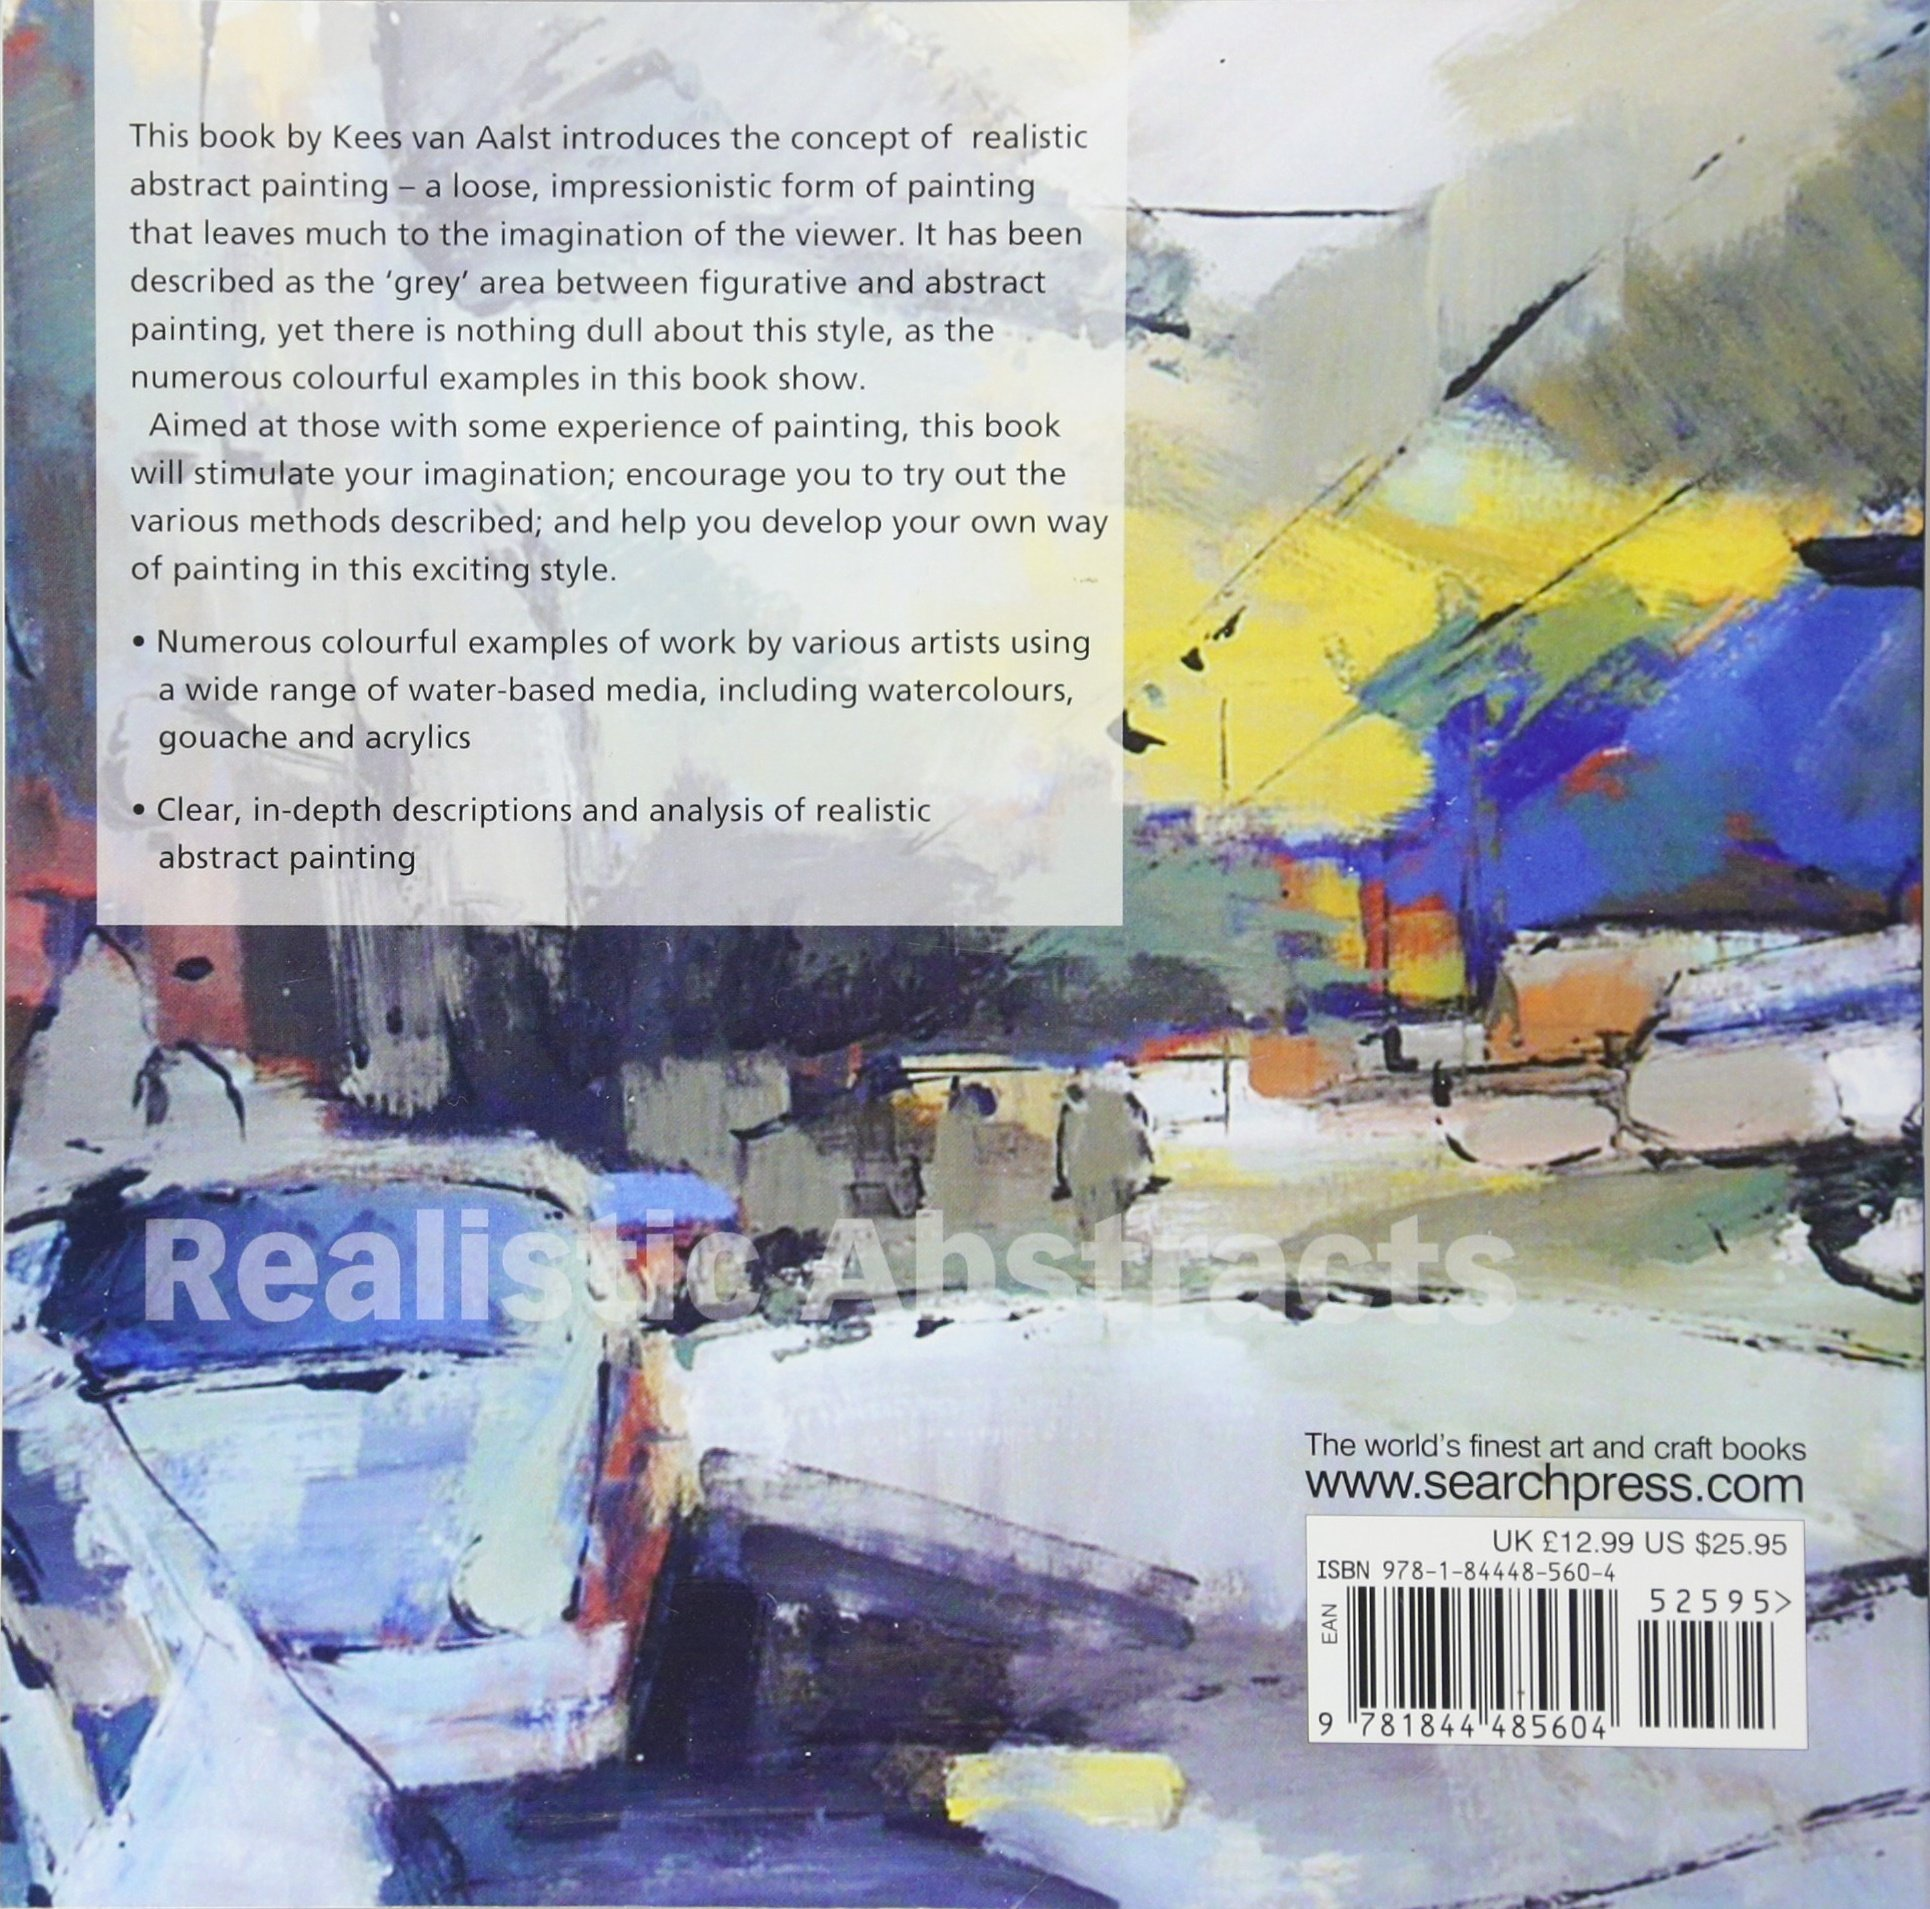 Watercolor artist magazine customer service - Realistic Abstracts Painting Abstracts Based On What You See Kees Van Aalst 8601404320828 Amazon Com Books